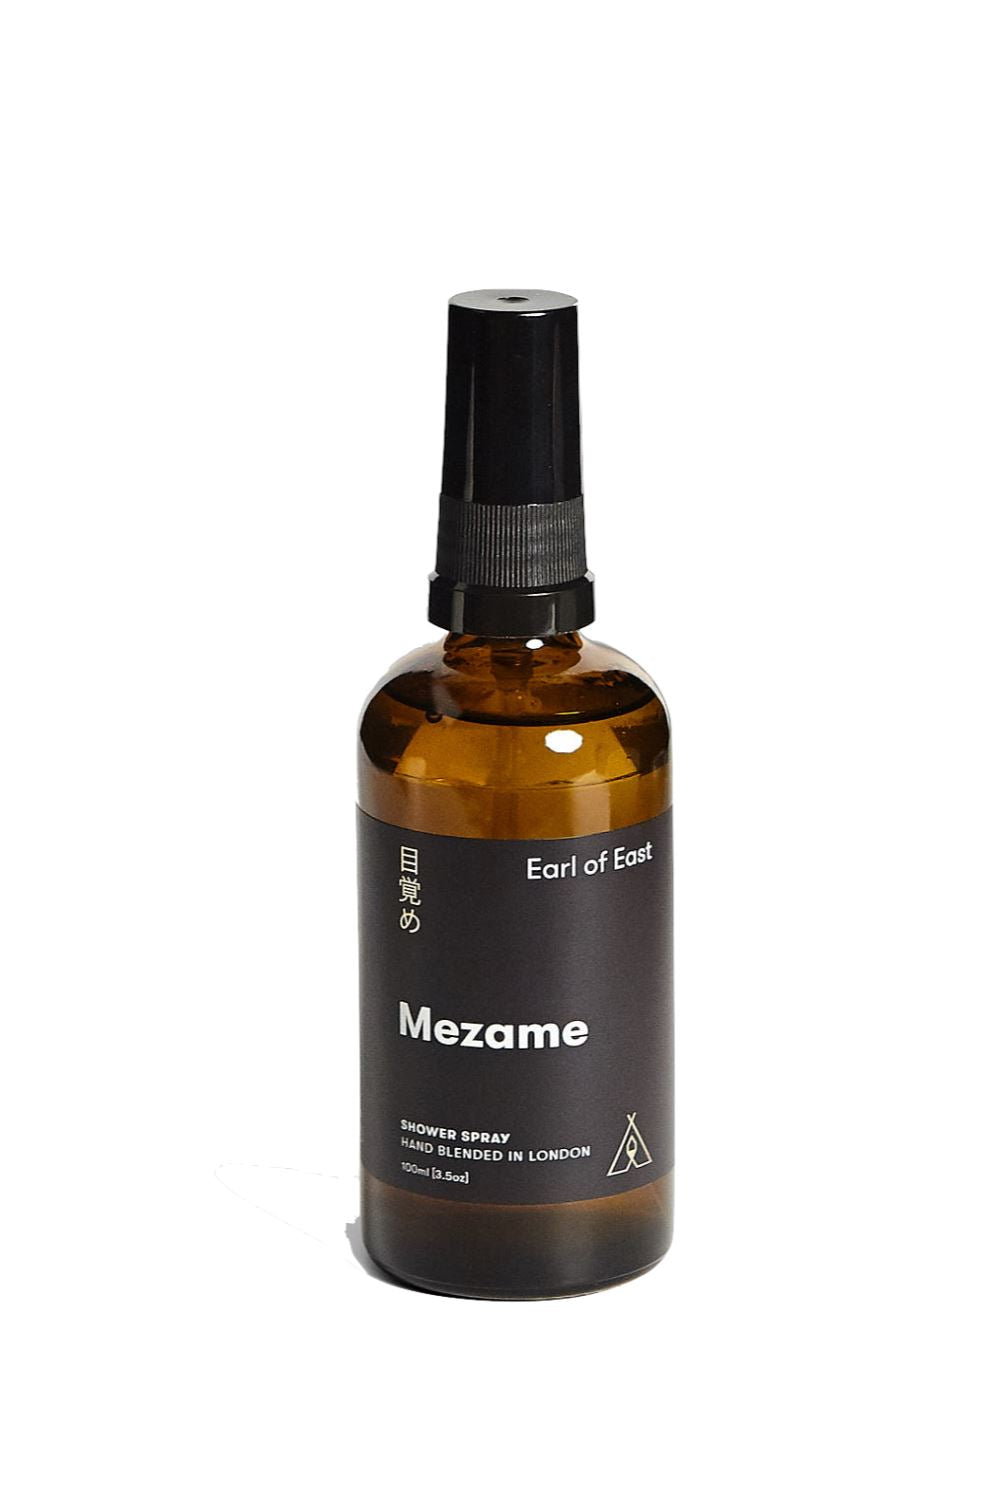 Mezame Shower Spray Bath & Body Earl of East London